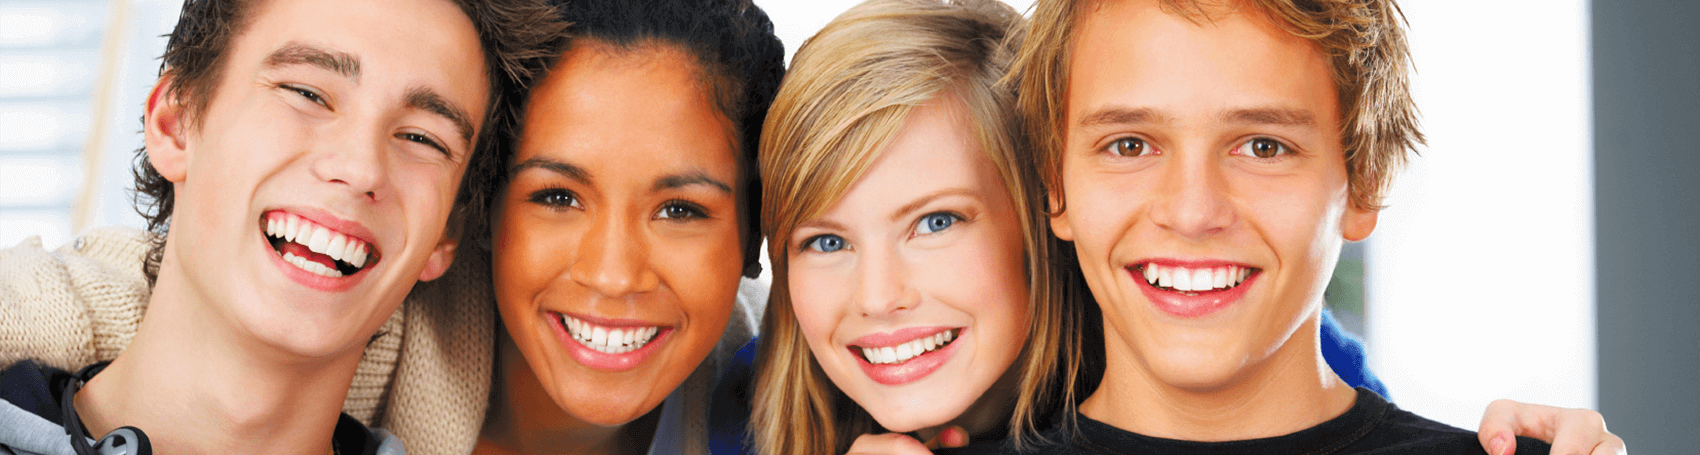 teens with invisalign for teens